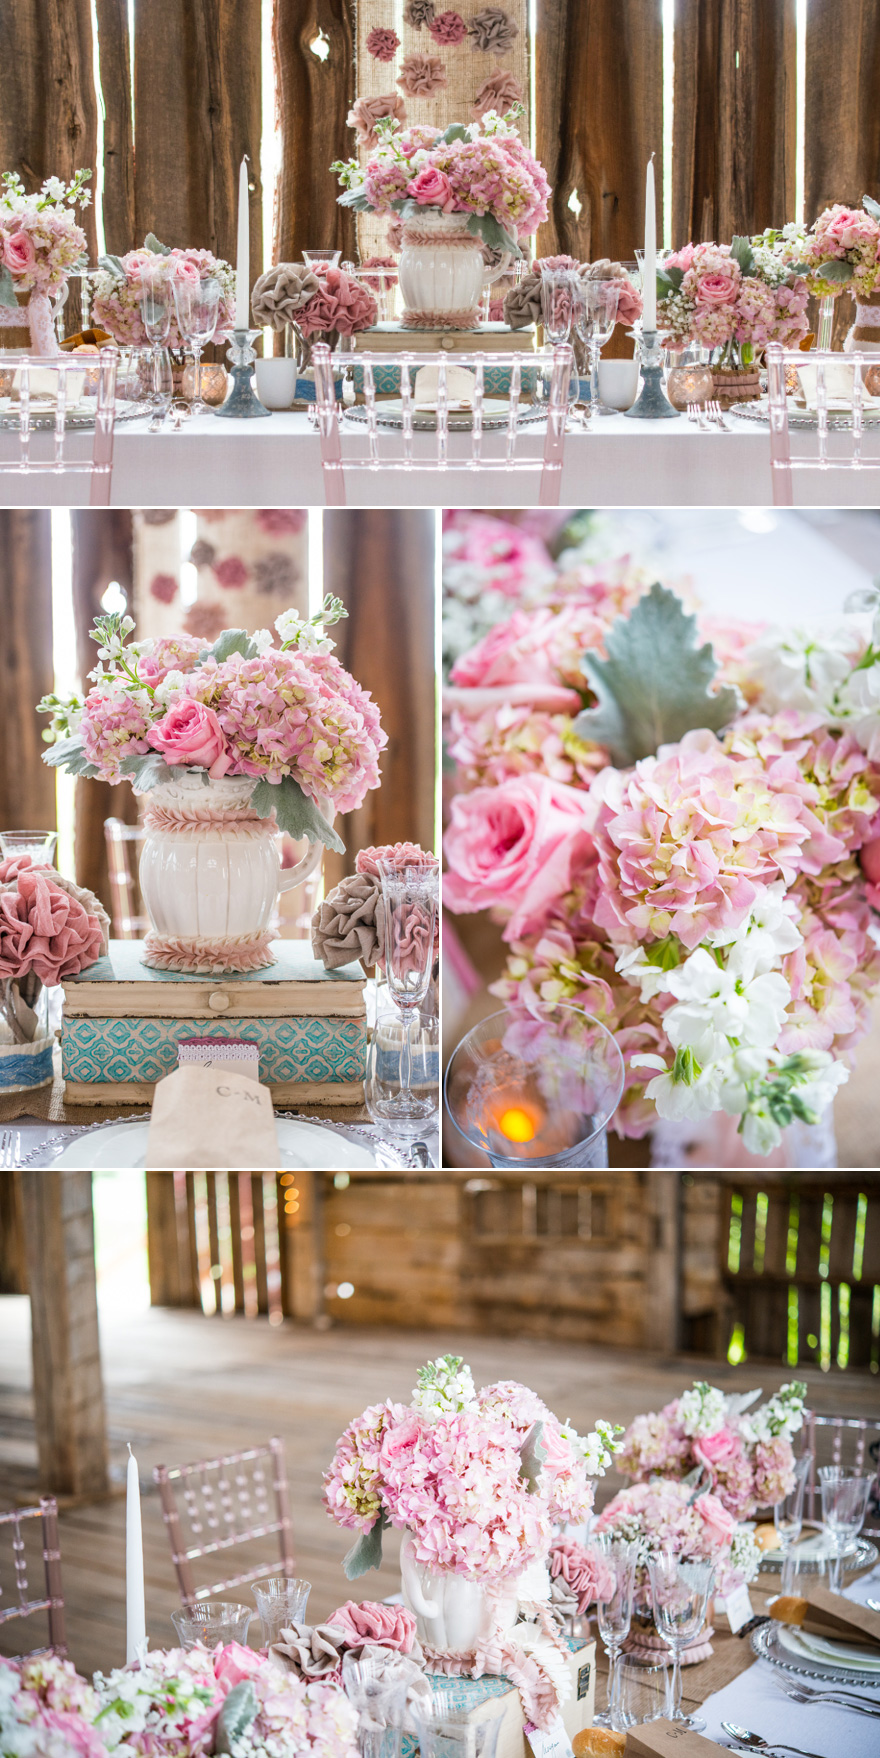 Pink and White Barn Wedding Rustic Shabby Chic Decor | Confetti.co.uk